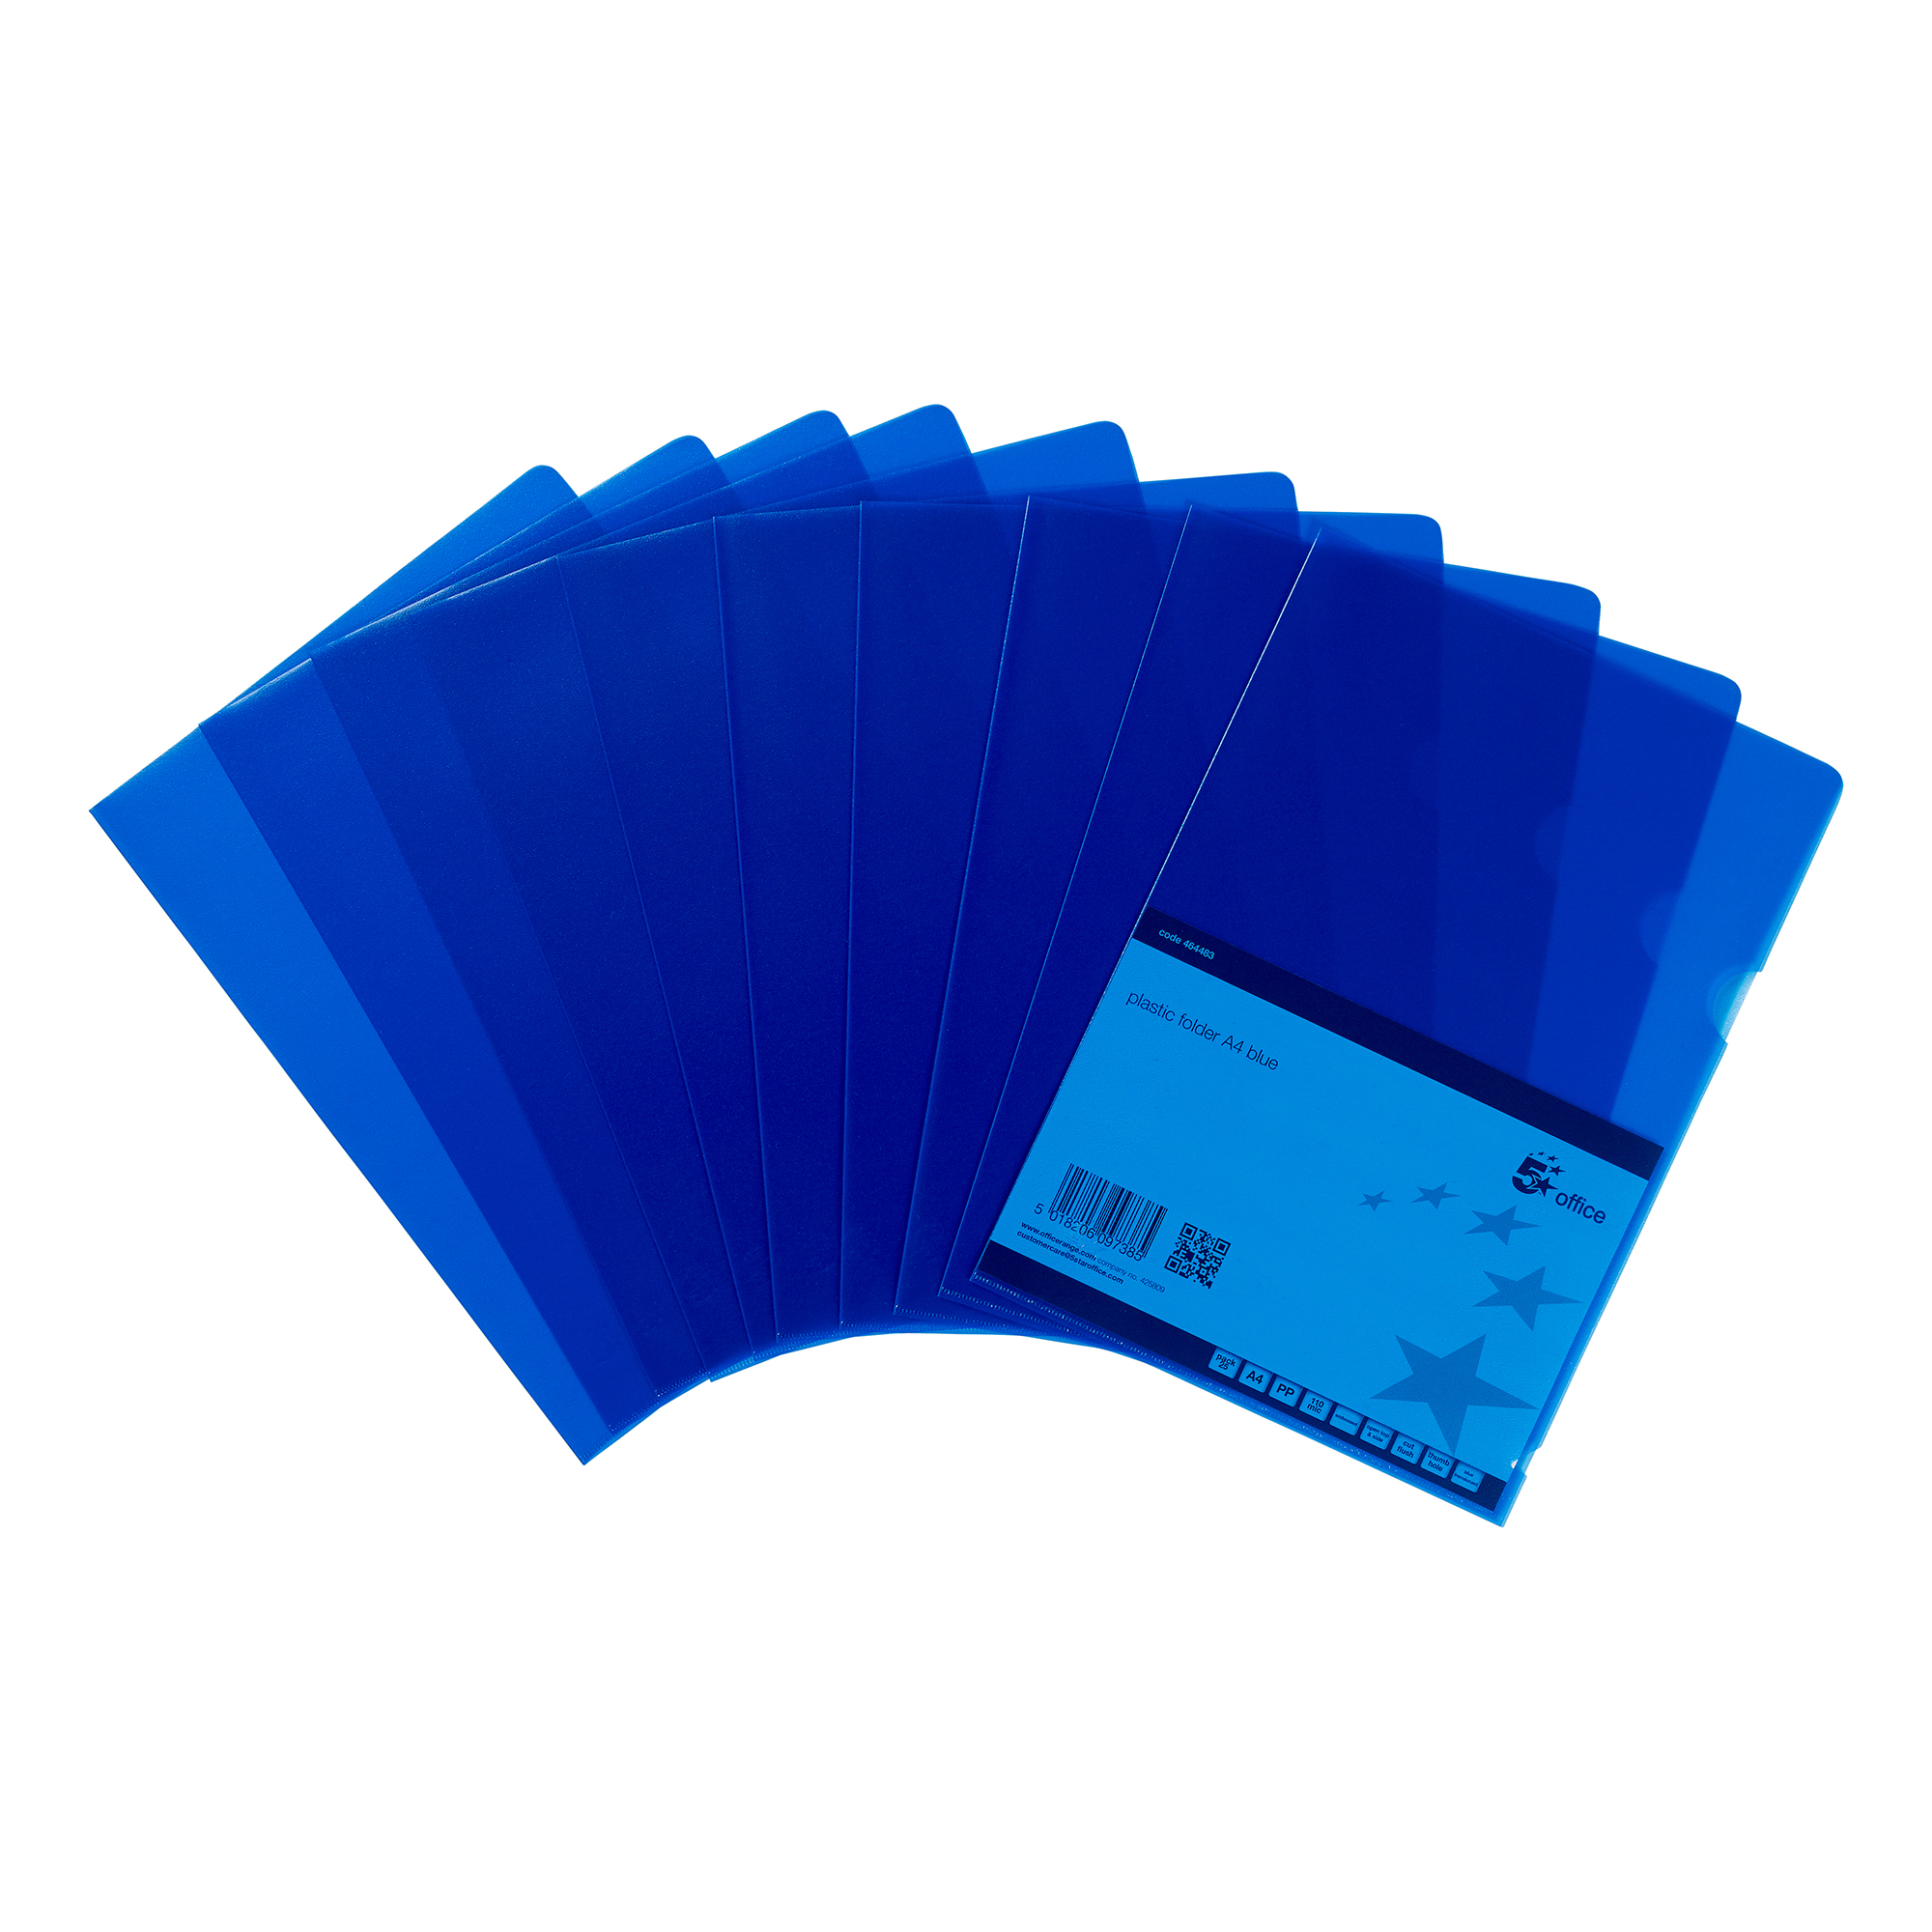 5 Star Office Folder Cut Flush Polypropylene Copy-safe Translucent A4 Blue Pack 25